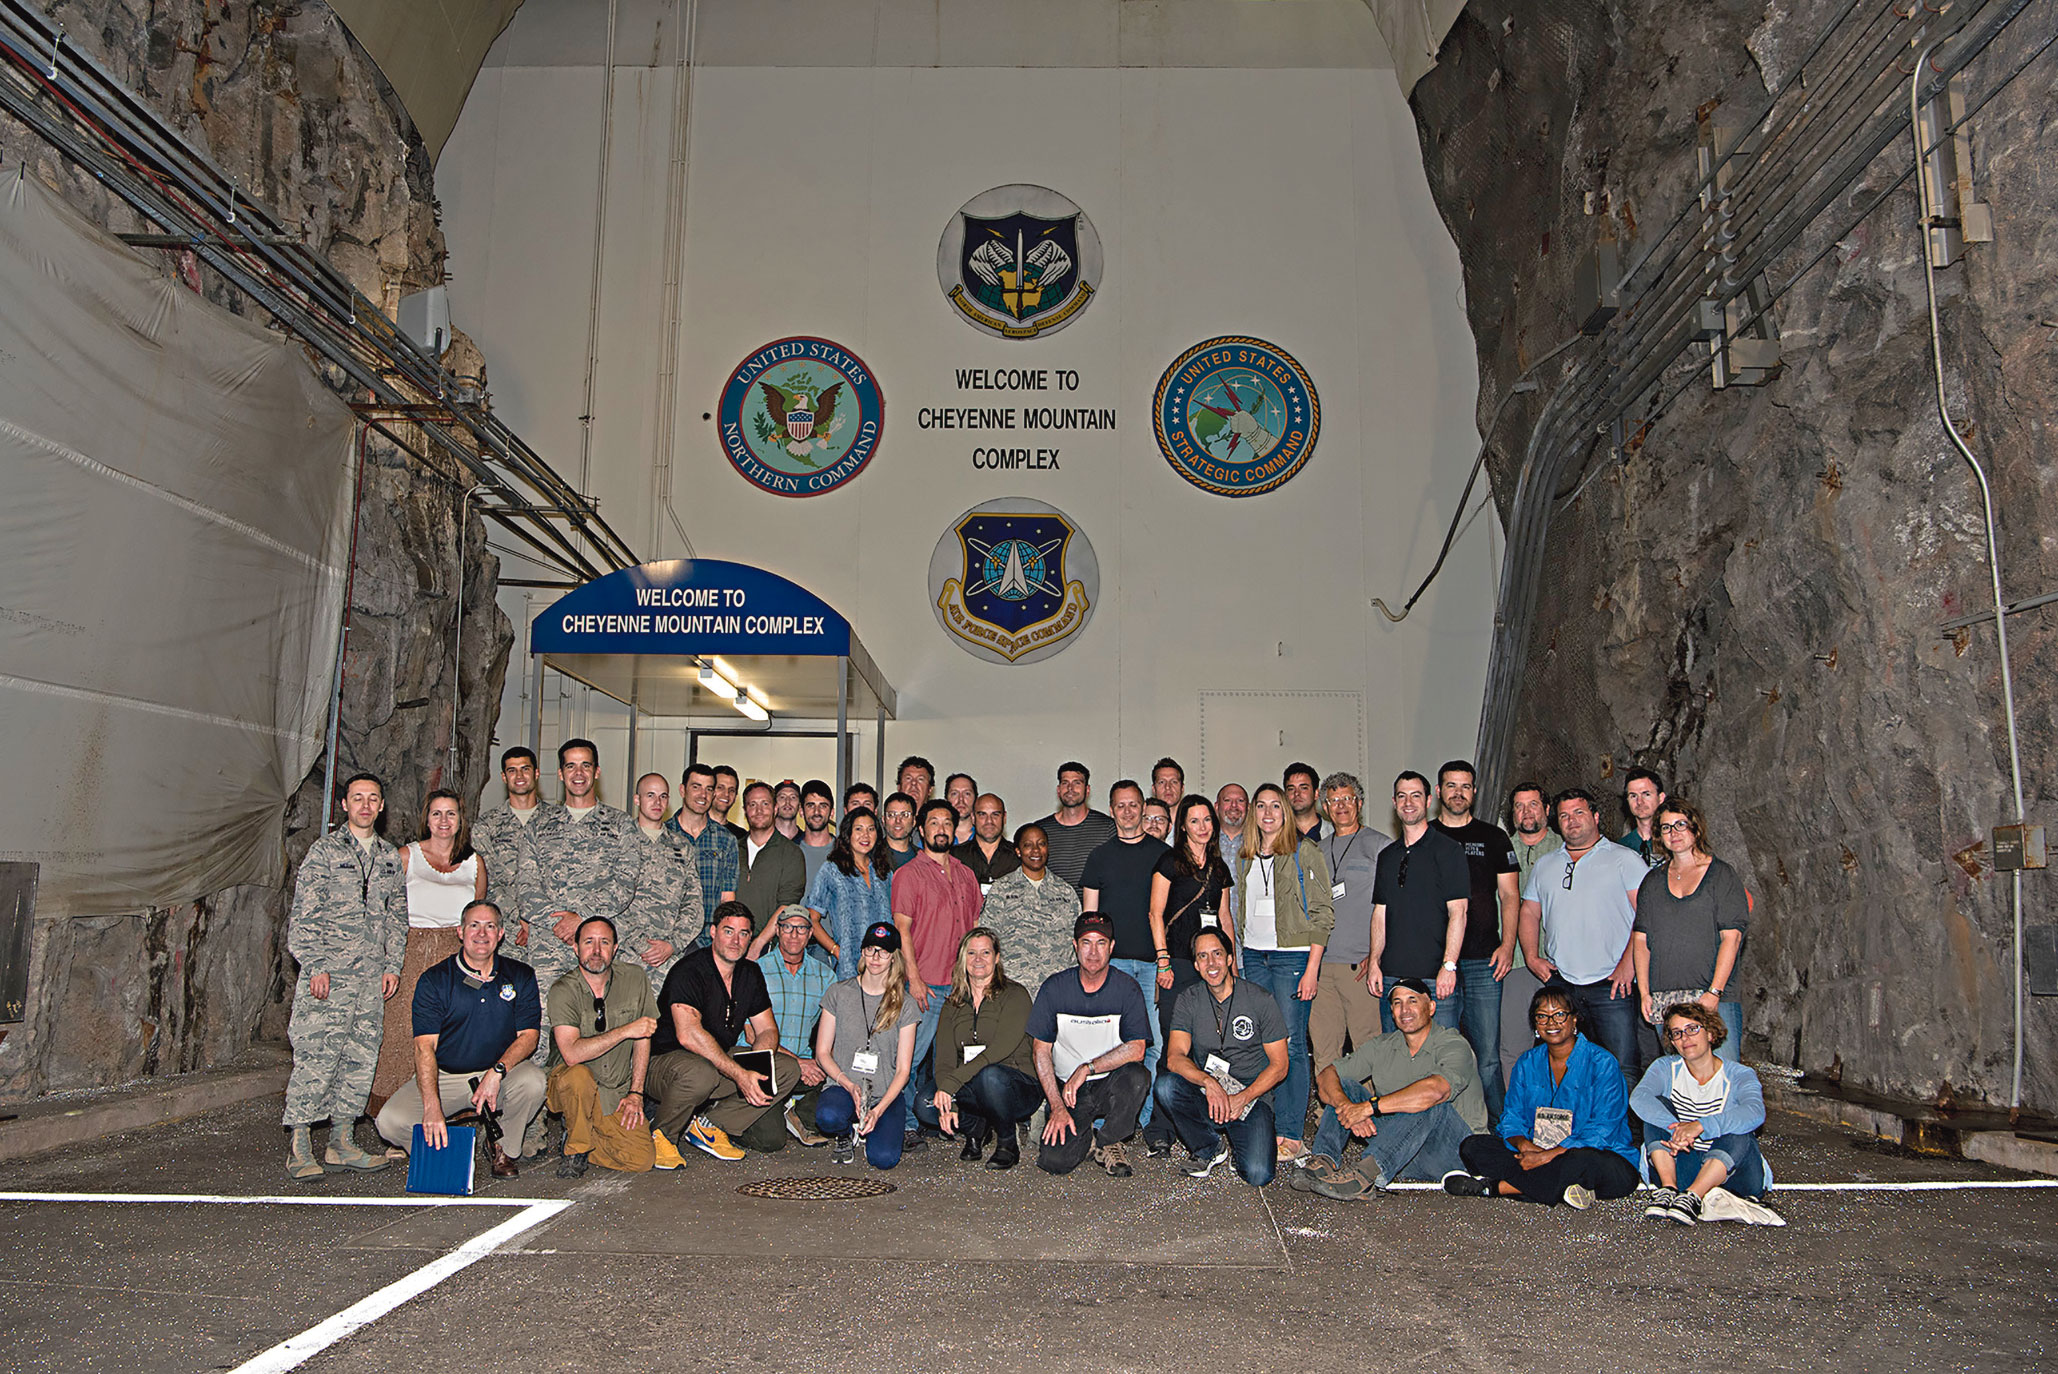 (U.S. Air Force photo by Steve Kotecki) Cheyenne Mountain Air Force Station, Colo. —A group of Hollywood executives visit Cheyenne Mountain Air Force Station, Colo., for a tour of the complex, July 18, 2017. The tour was conducted as part of an outreach program to Hollywood screenwriters, producers and directors in an effort to give Hollywood an inside look into the Air Force space mission and ensure that any projects they produce can be represented accurately.